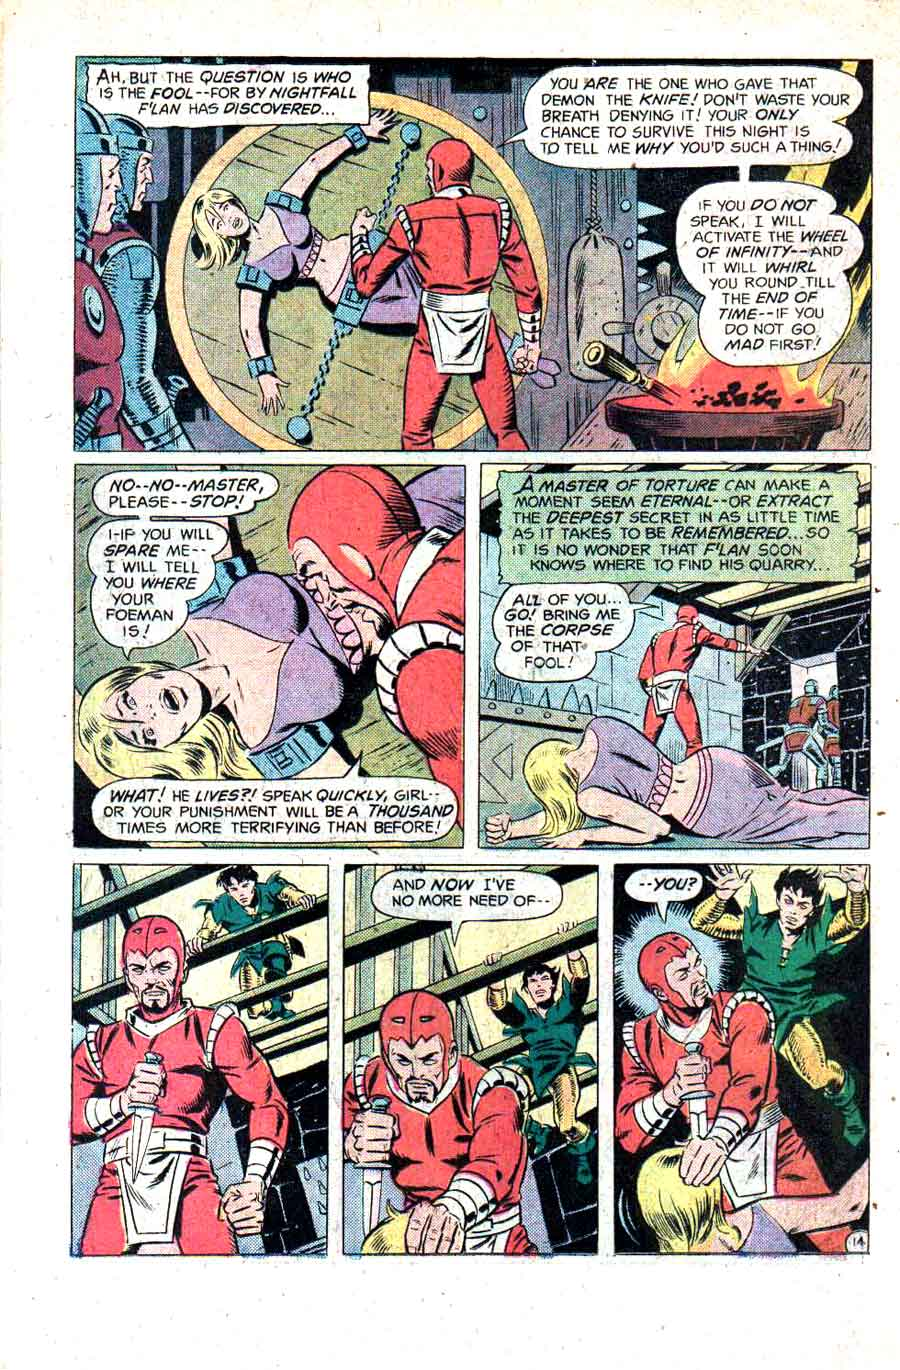 Stalker v1 #2 dc bronze age comic book page art by Steve Ditko, Wally Wood